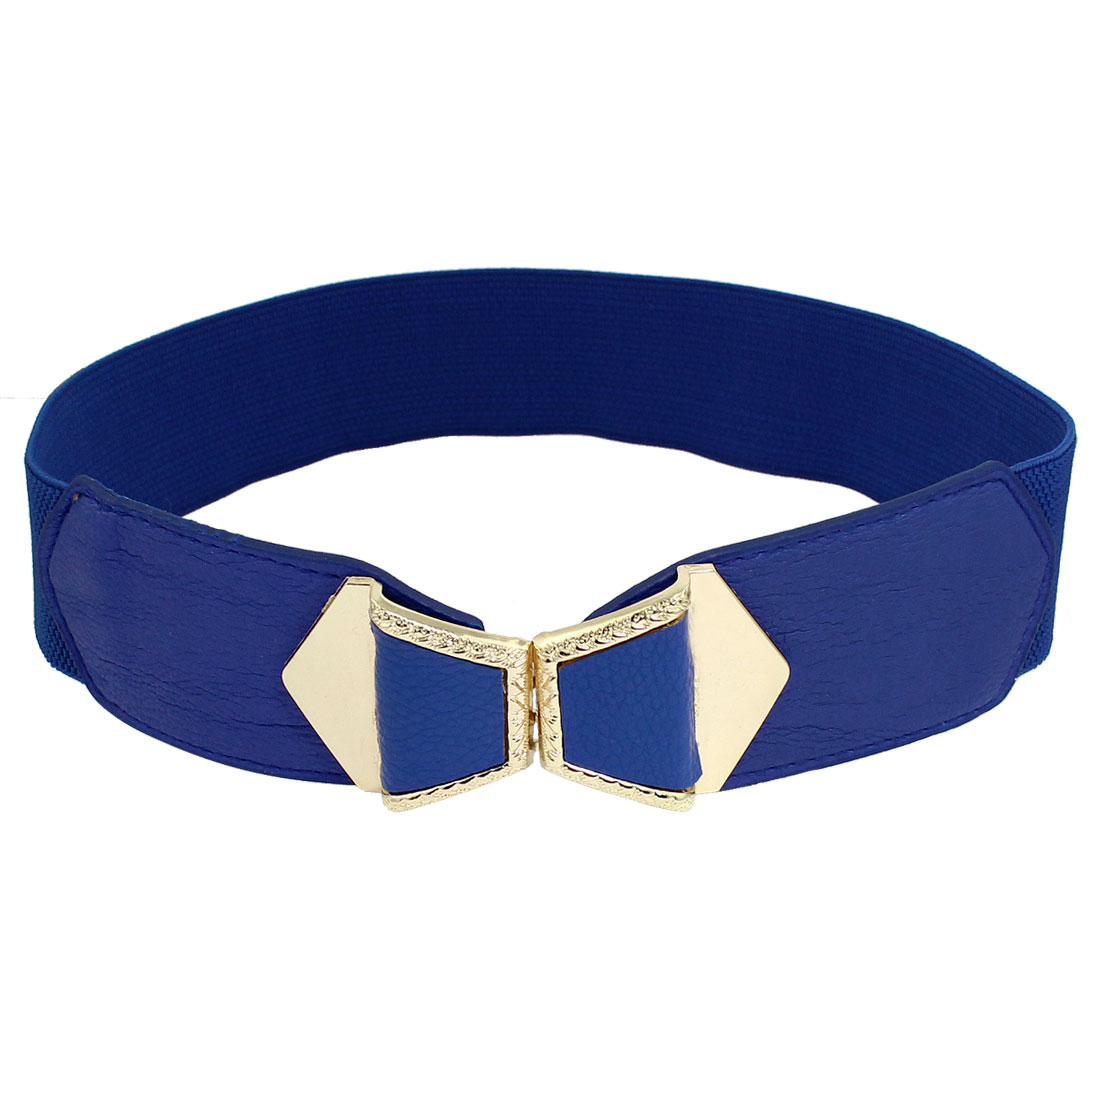 Women Bowtie Design Interlock Buckle Stretchy Cinch Belt 4.8cm Wide Royal Blue